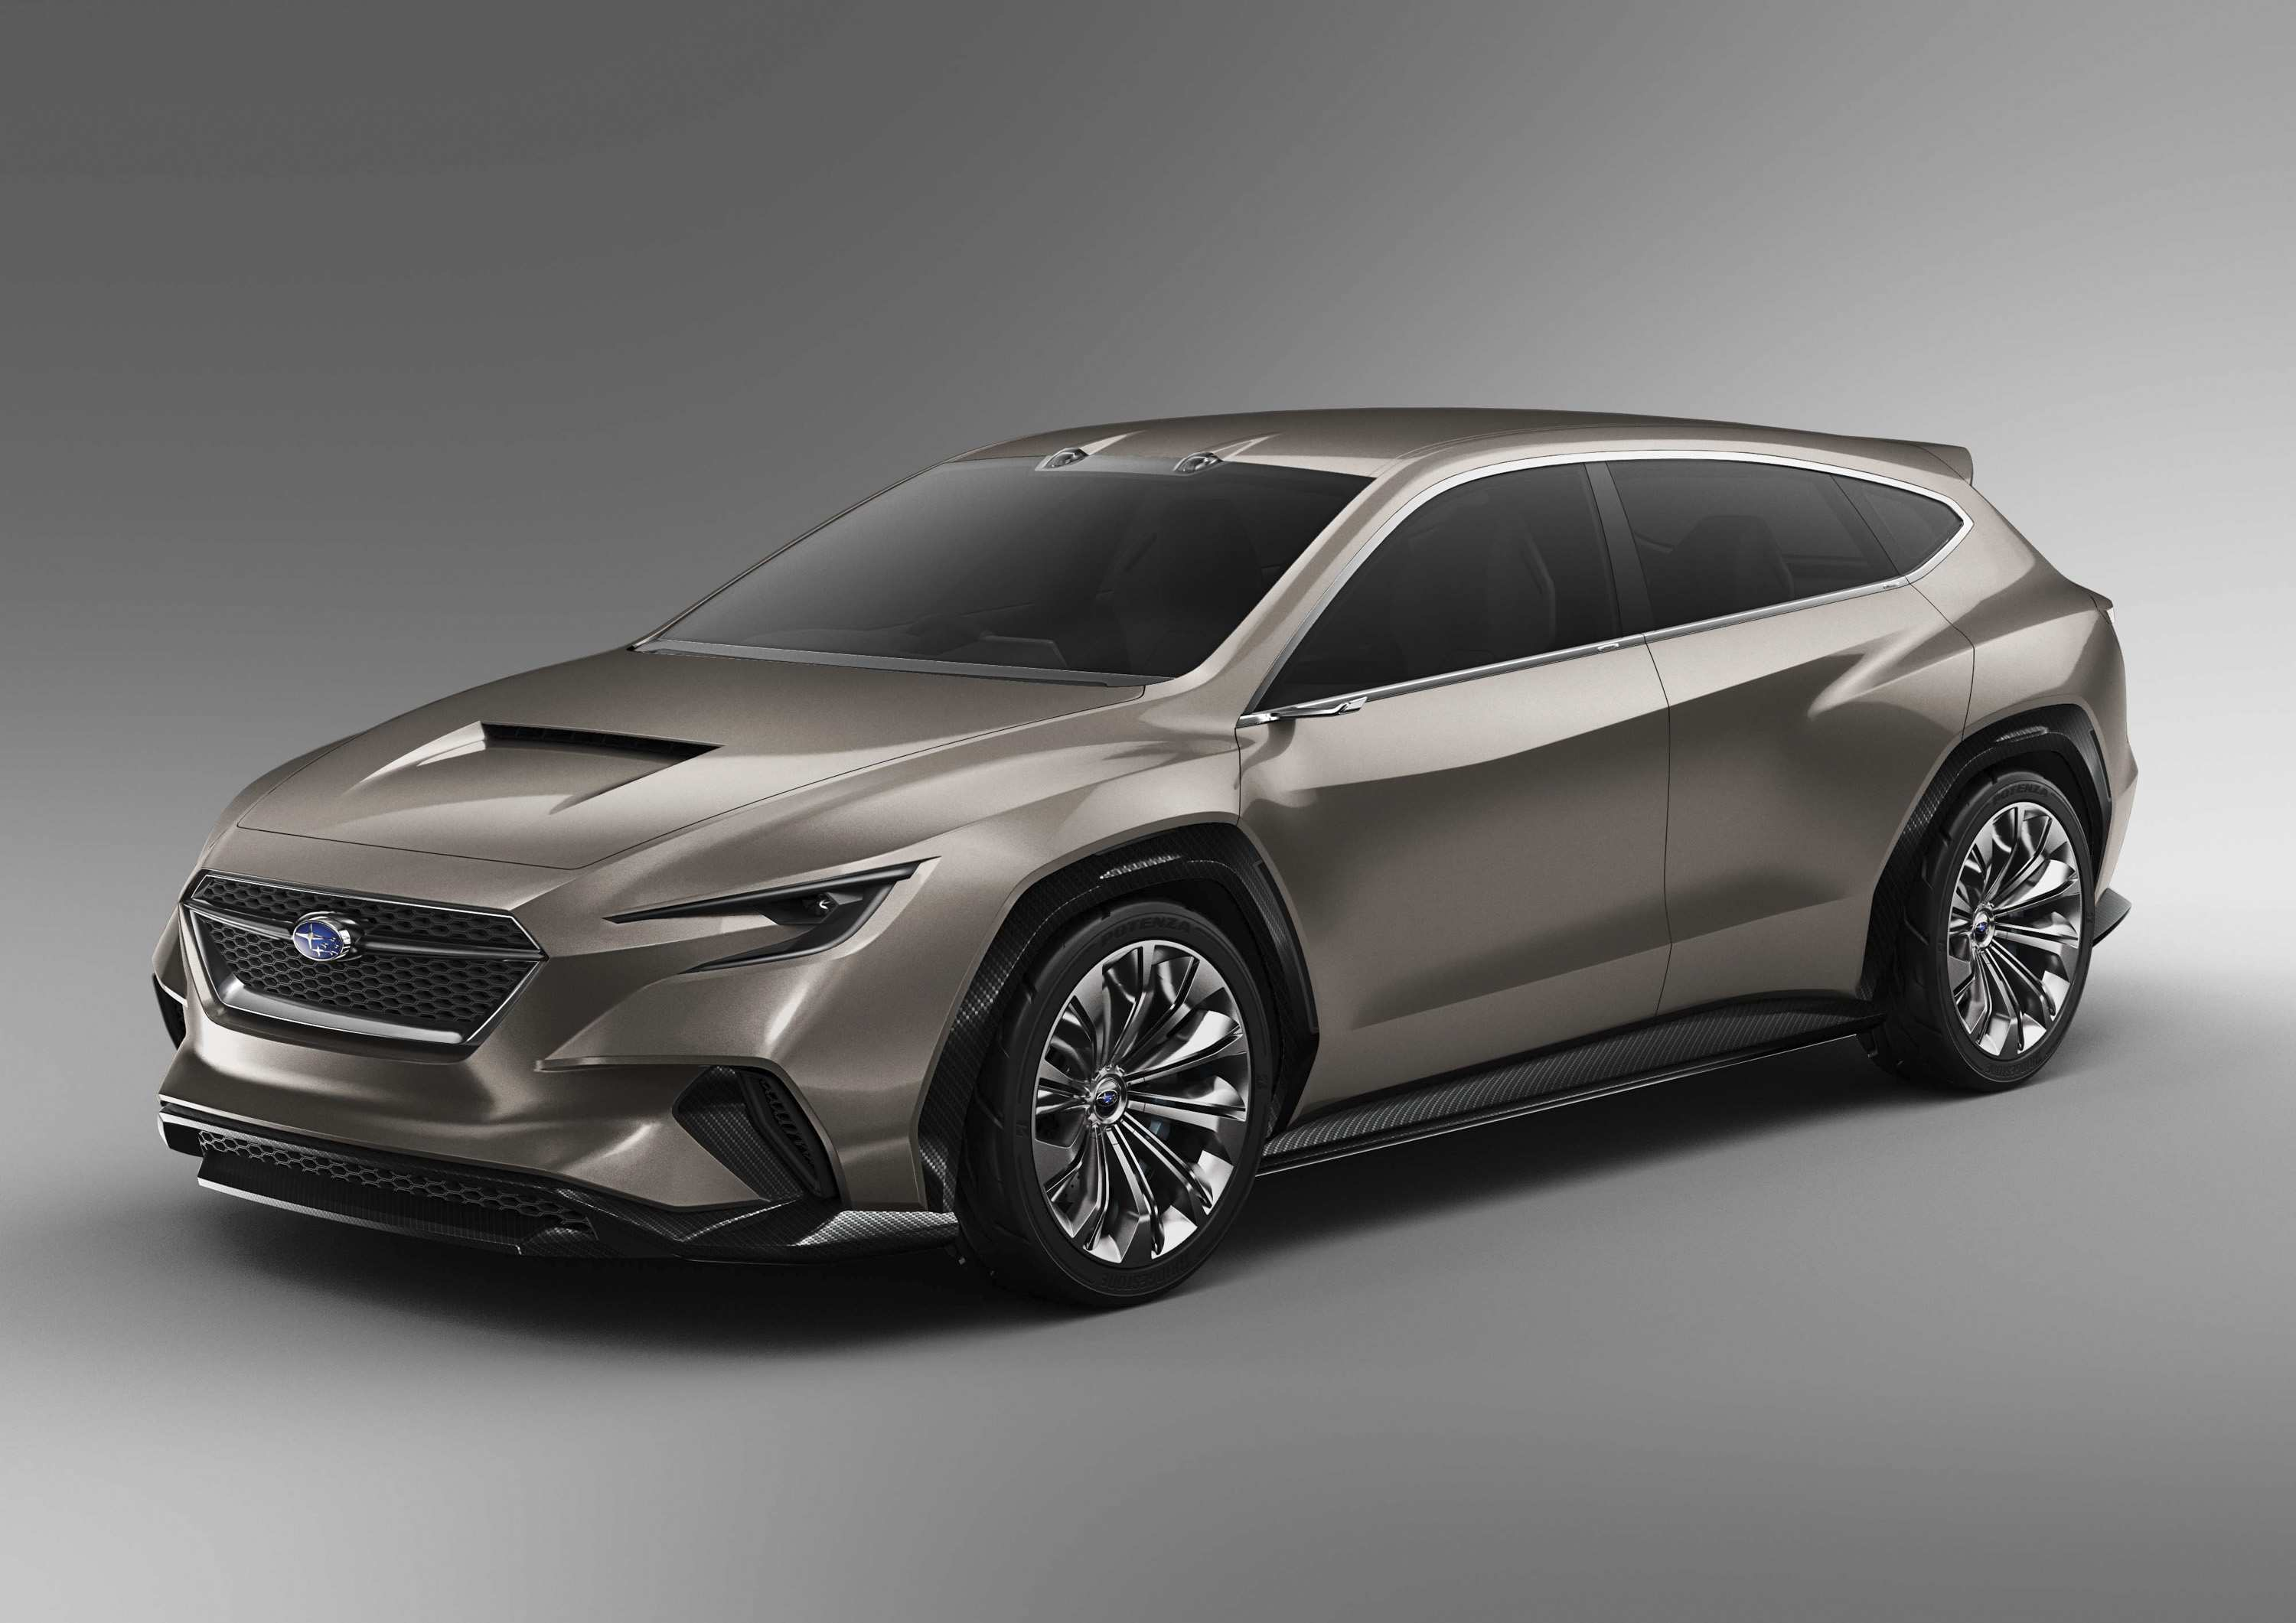 57 All New Subaru New Models 2020 Style